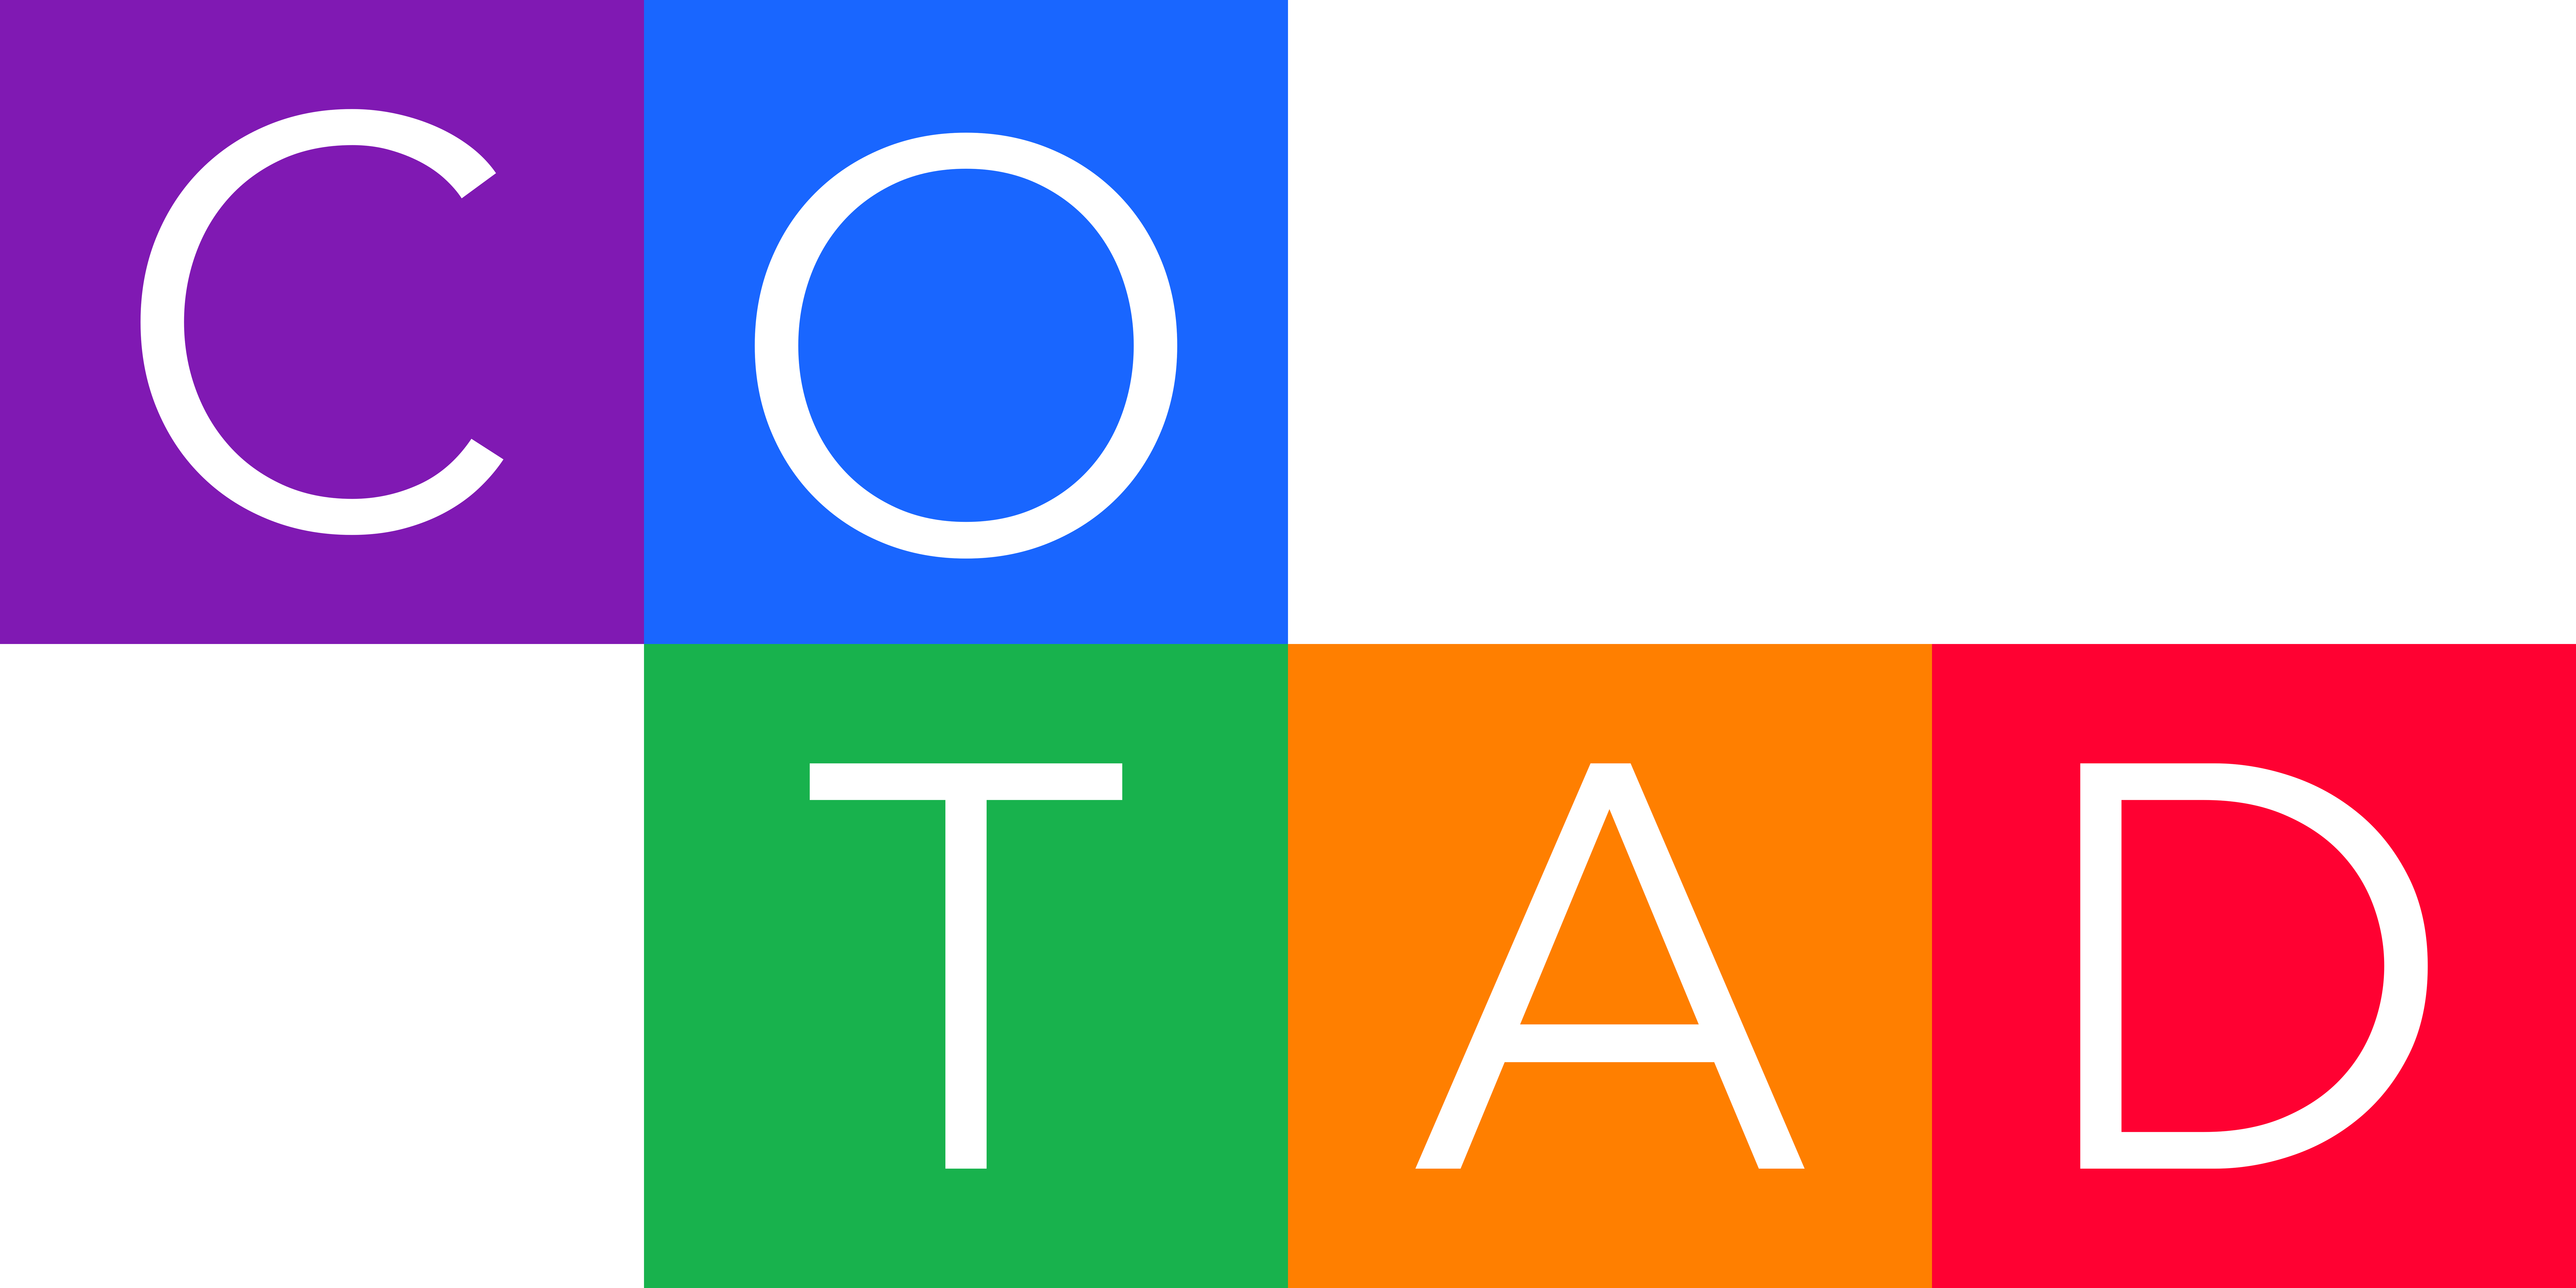 COTAD-logo-v01 copy